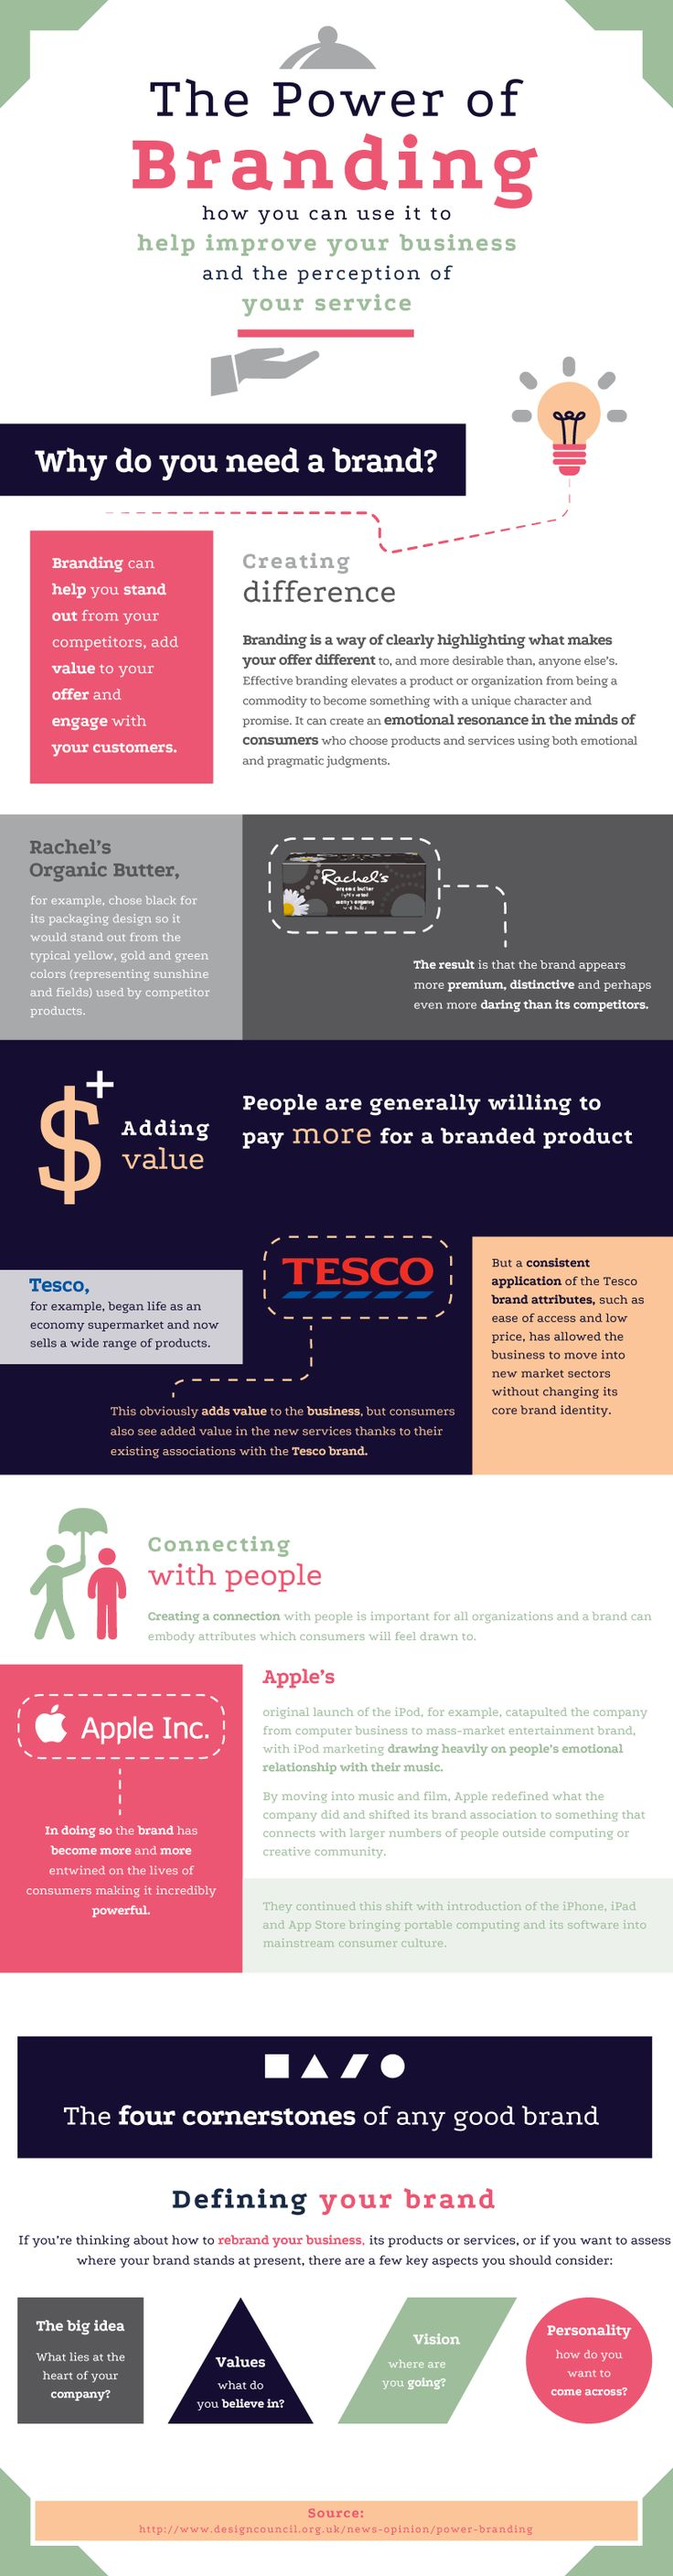 The Power of Branding [Infographic]